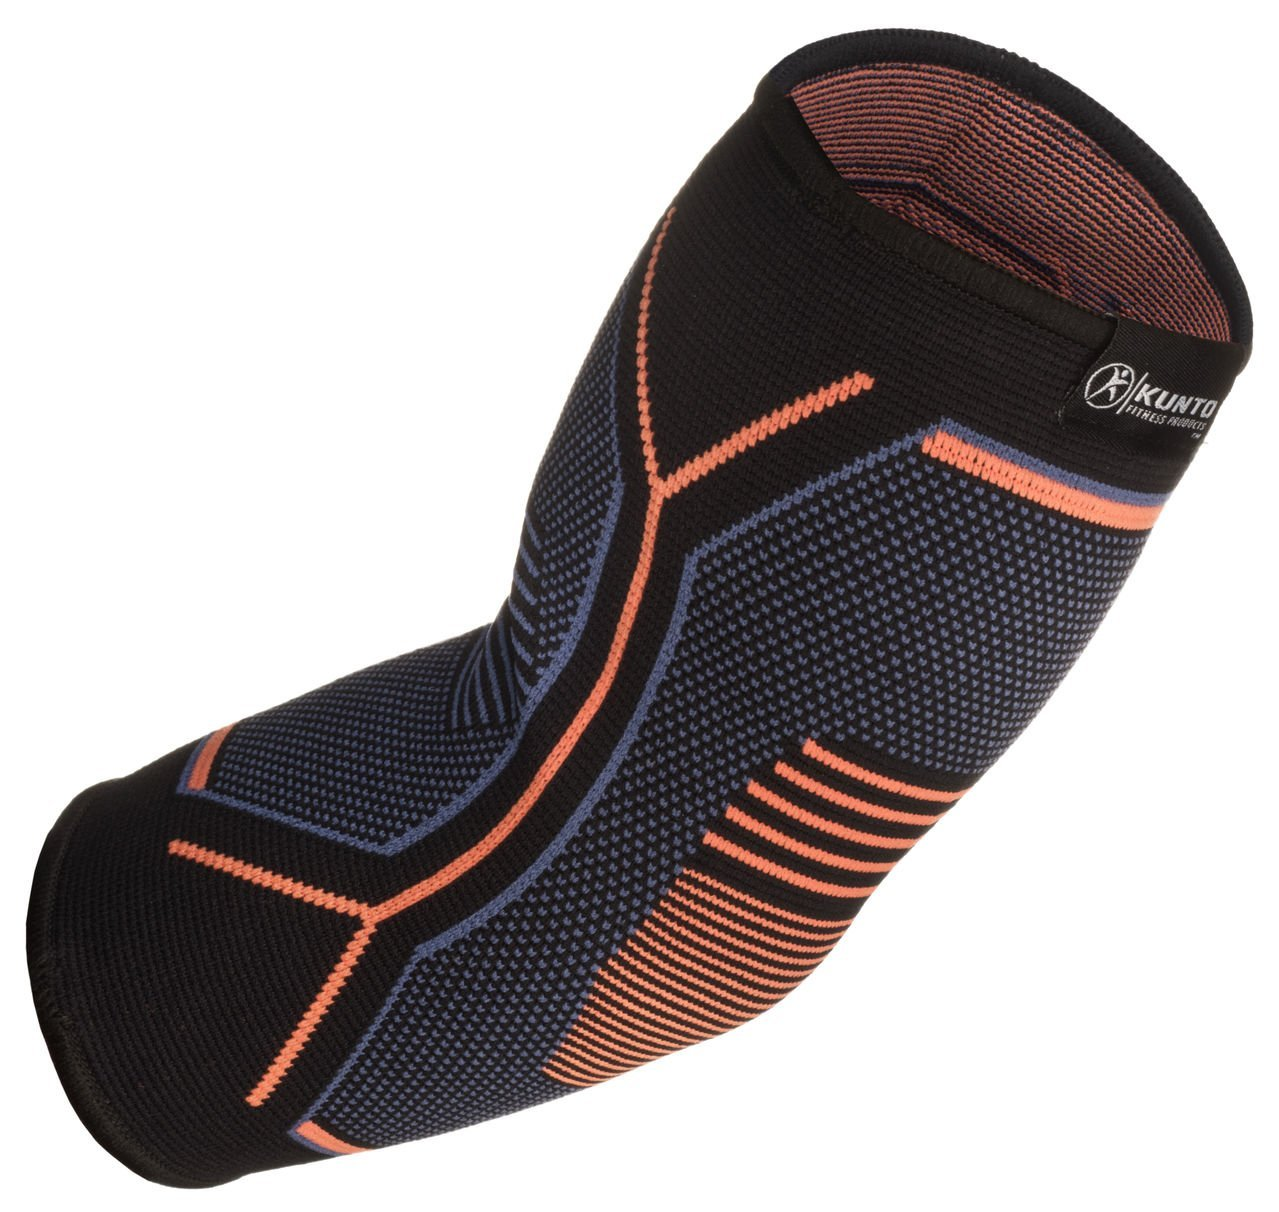 The Kunto Fitness Elbow Brace Compression Support Sleeve